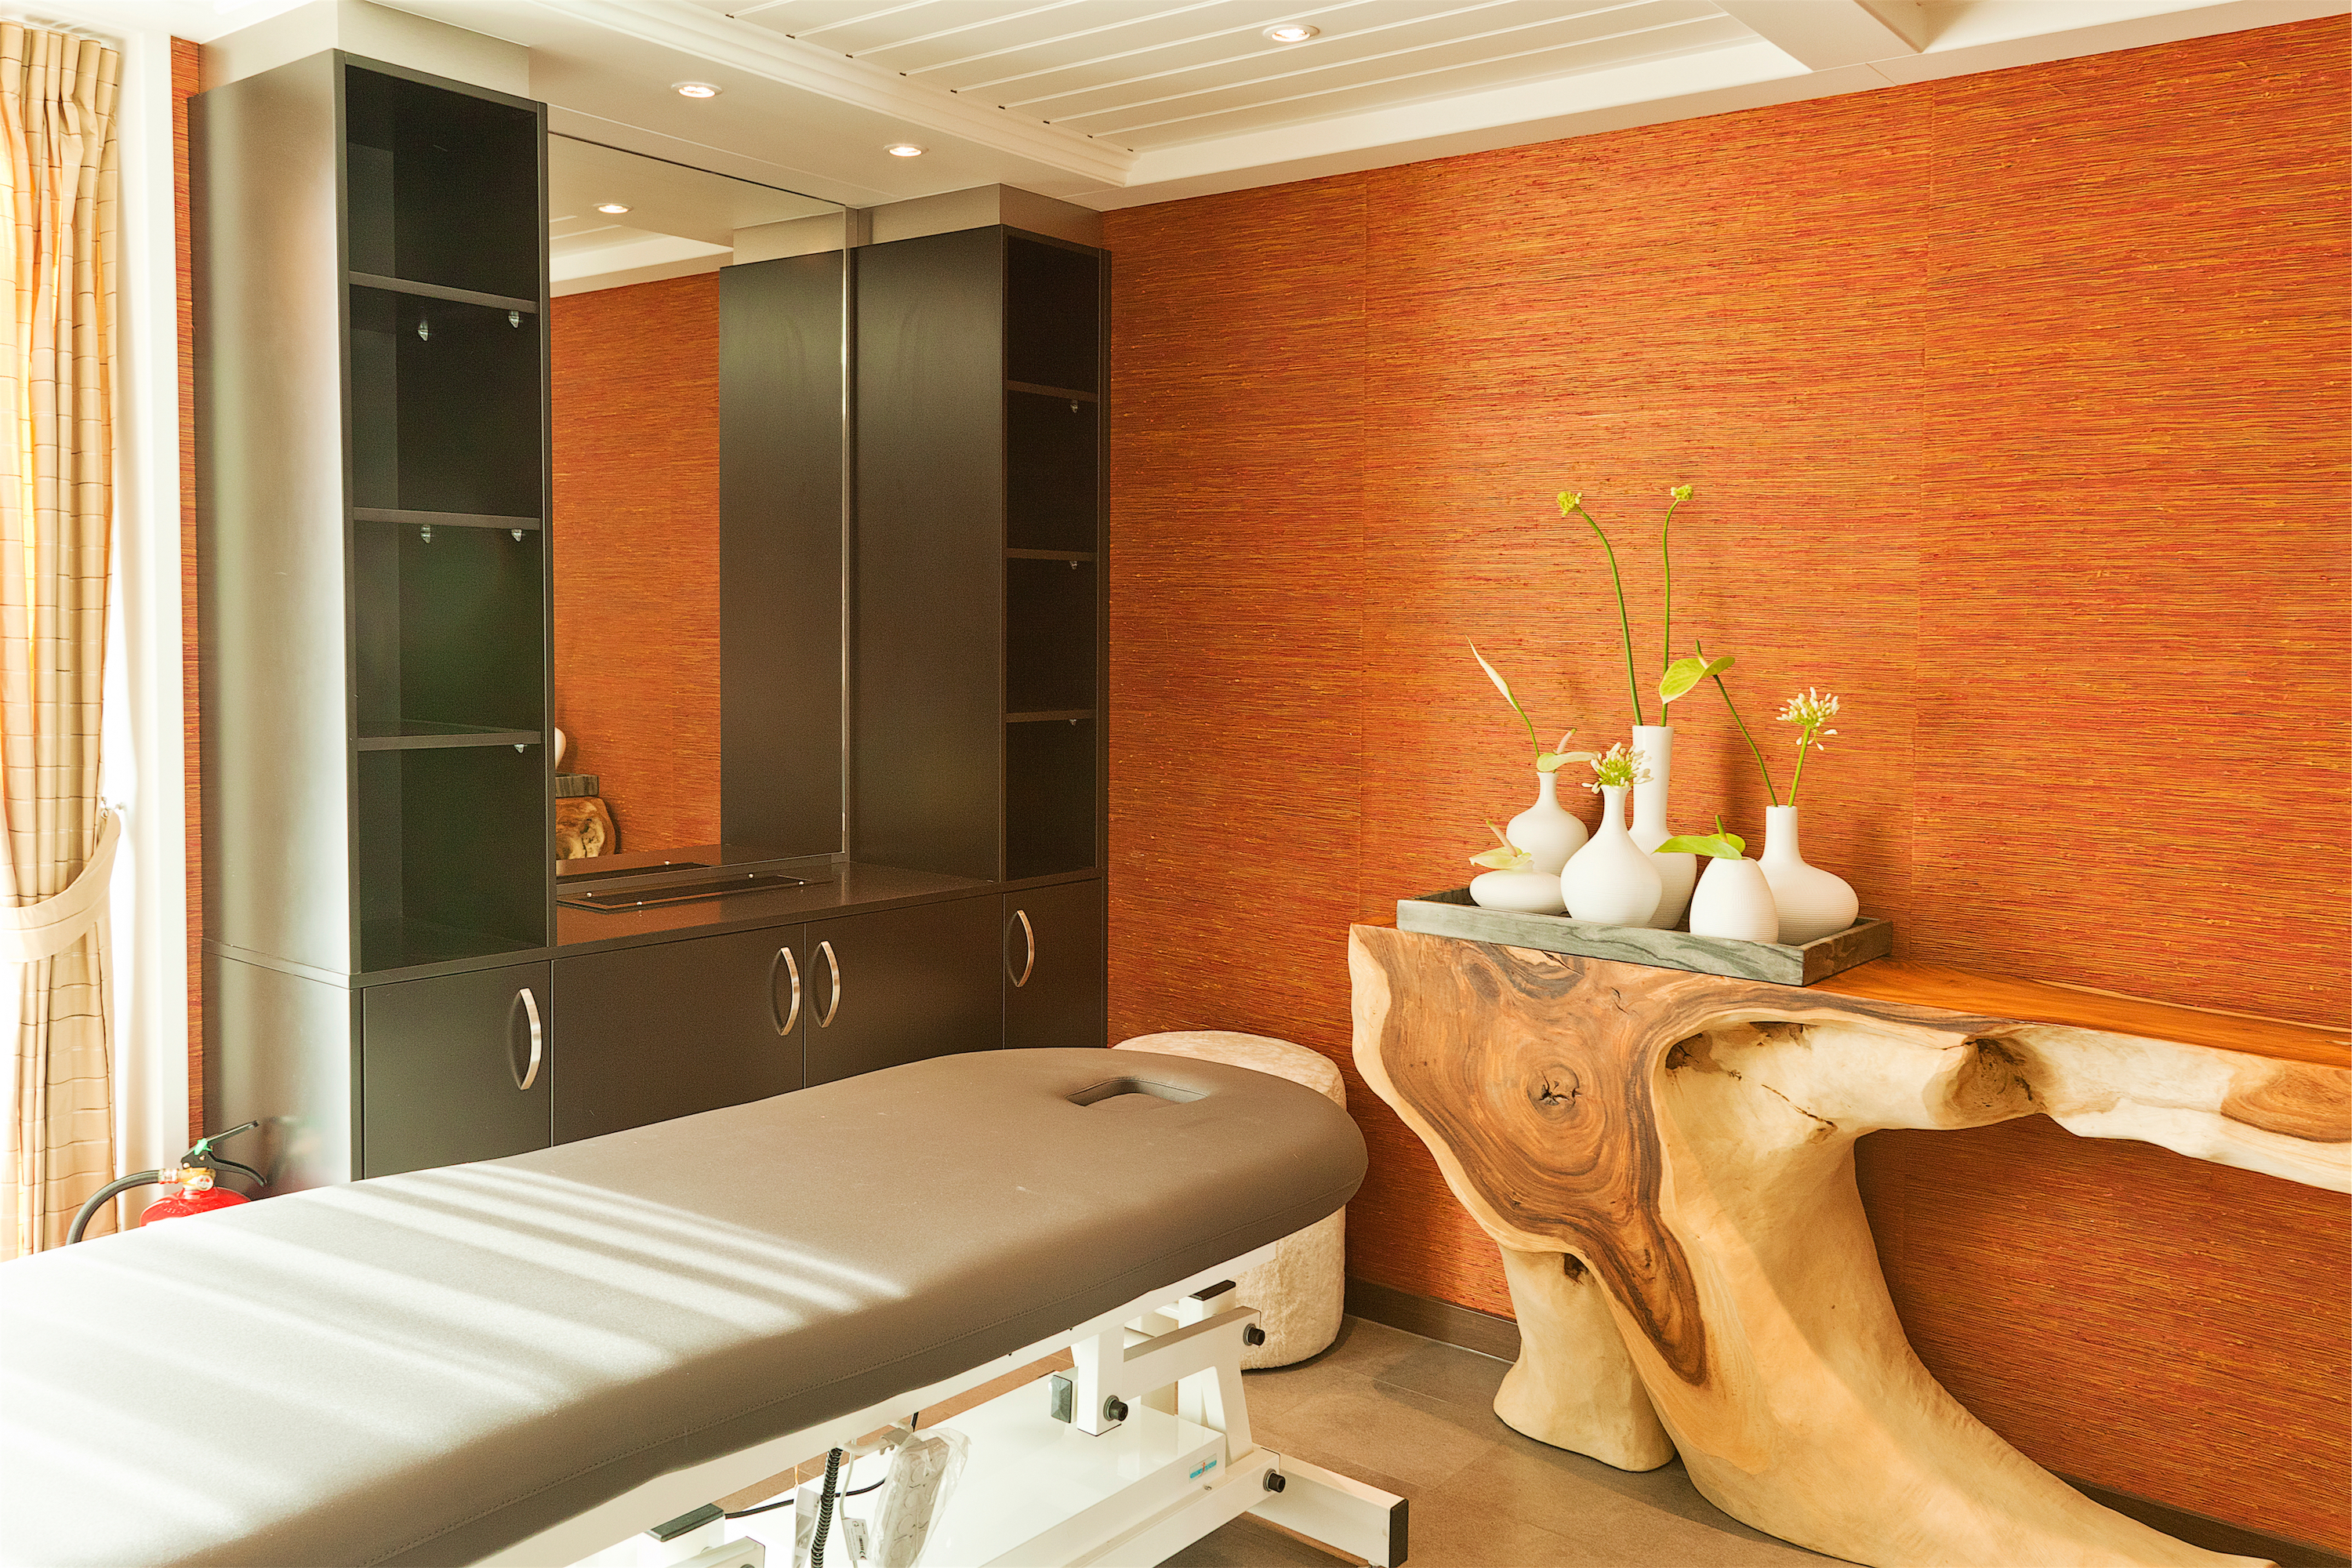 AmaWaterways AmaVerde AmaBella Interior Spa.jpg